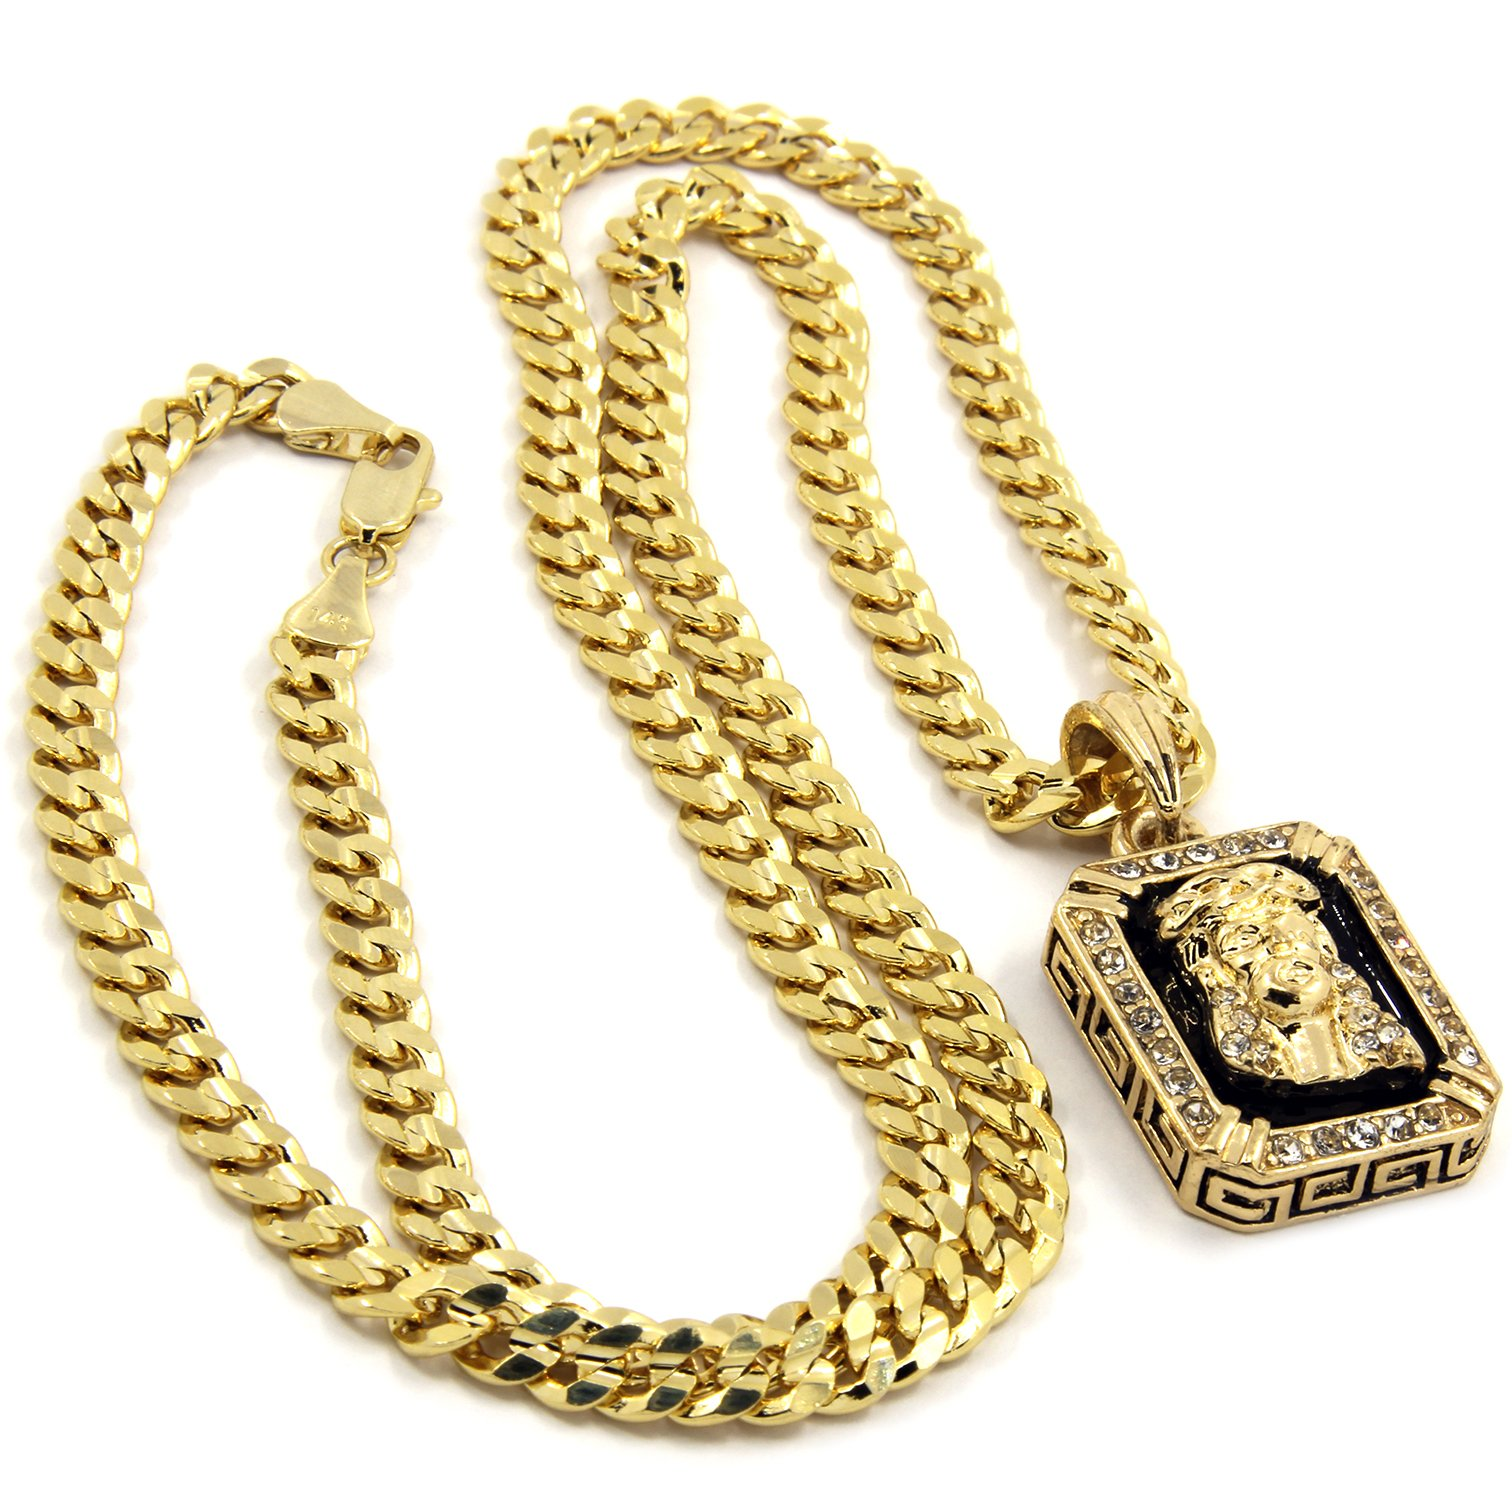 Mens Gold Plated Hip-Hop Iced Cz Black Ruby Jesus Face Pendant 5mm 24'' Cuban Chain Necklace D541